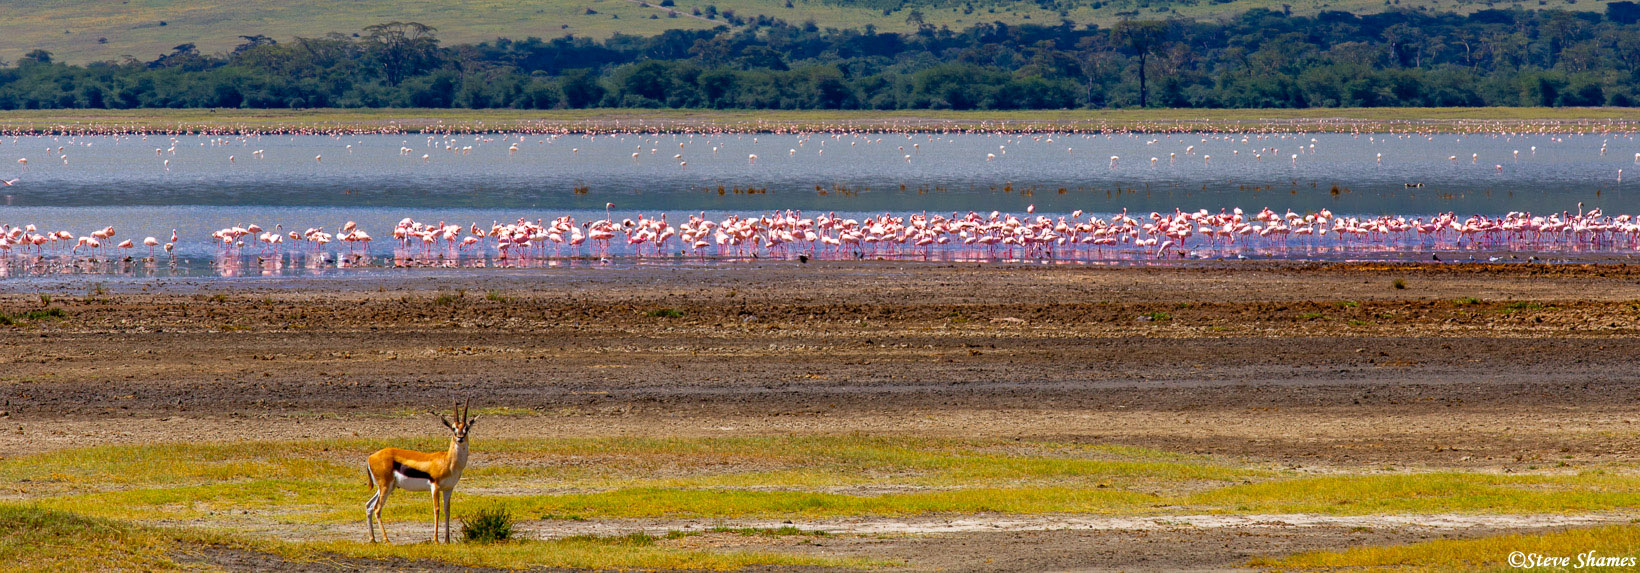 ngorongoro crater, tanzania, flamingos, thompsons gazelle, photo